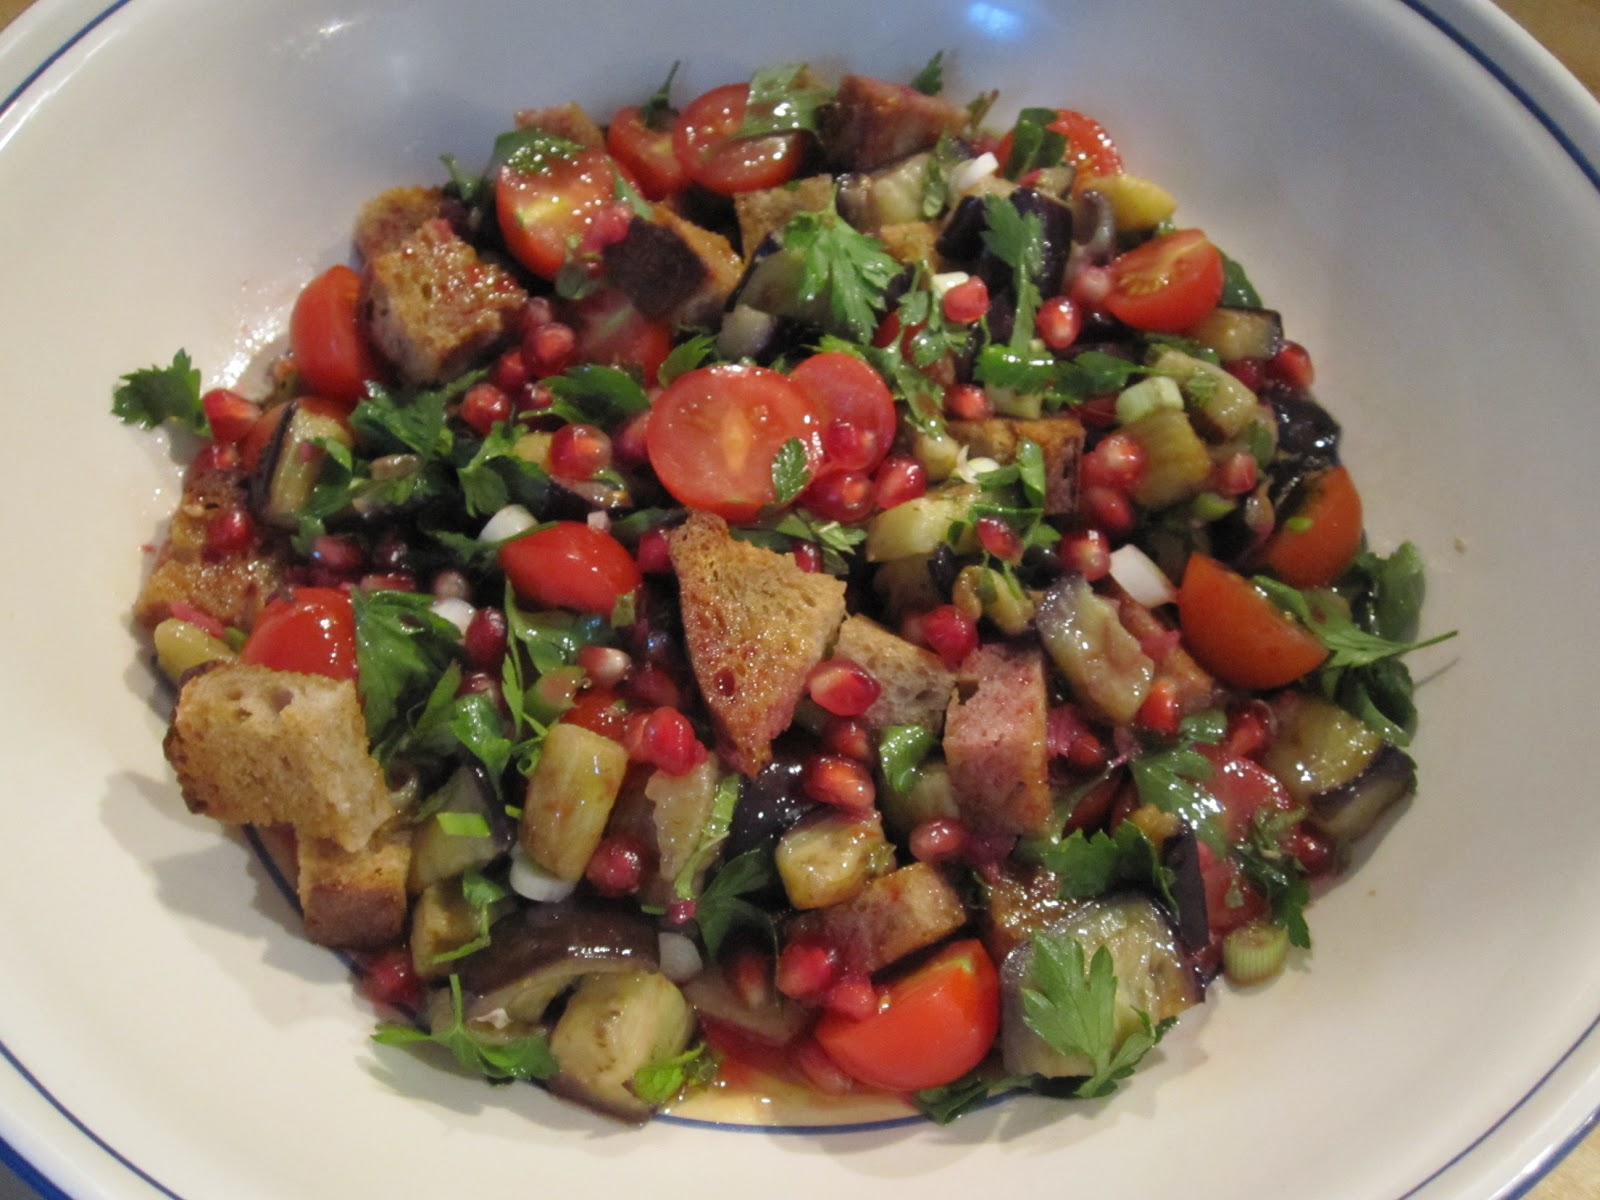 Vicky's Online Cookbook: Fattoush Salad with Pomegranate & Feta